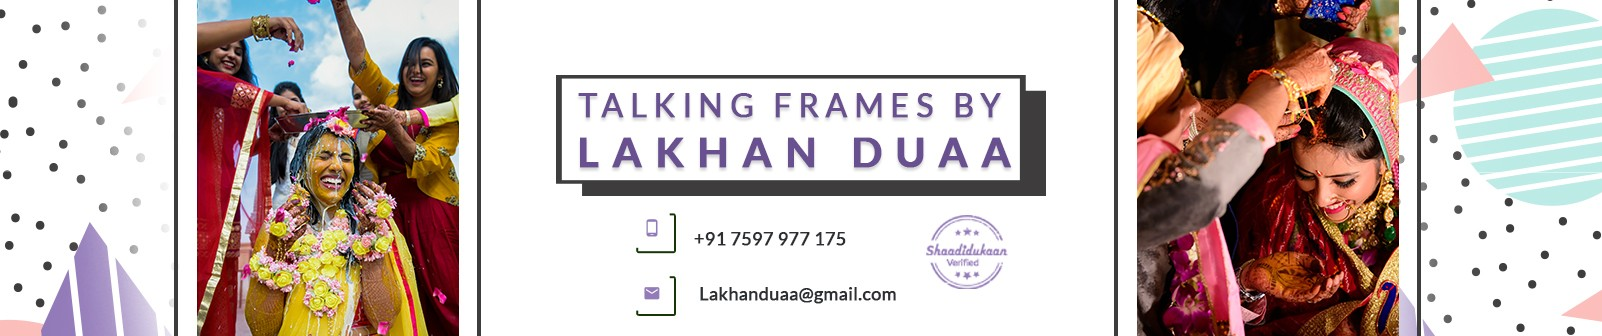 Talking Frames By Lakhan Duaa